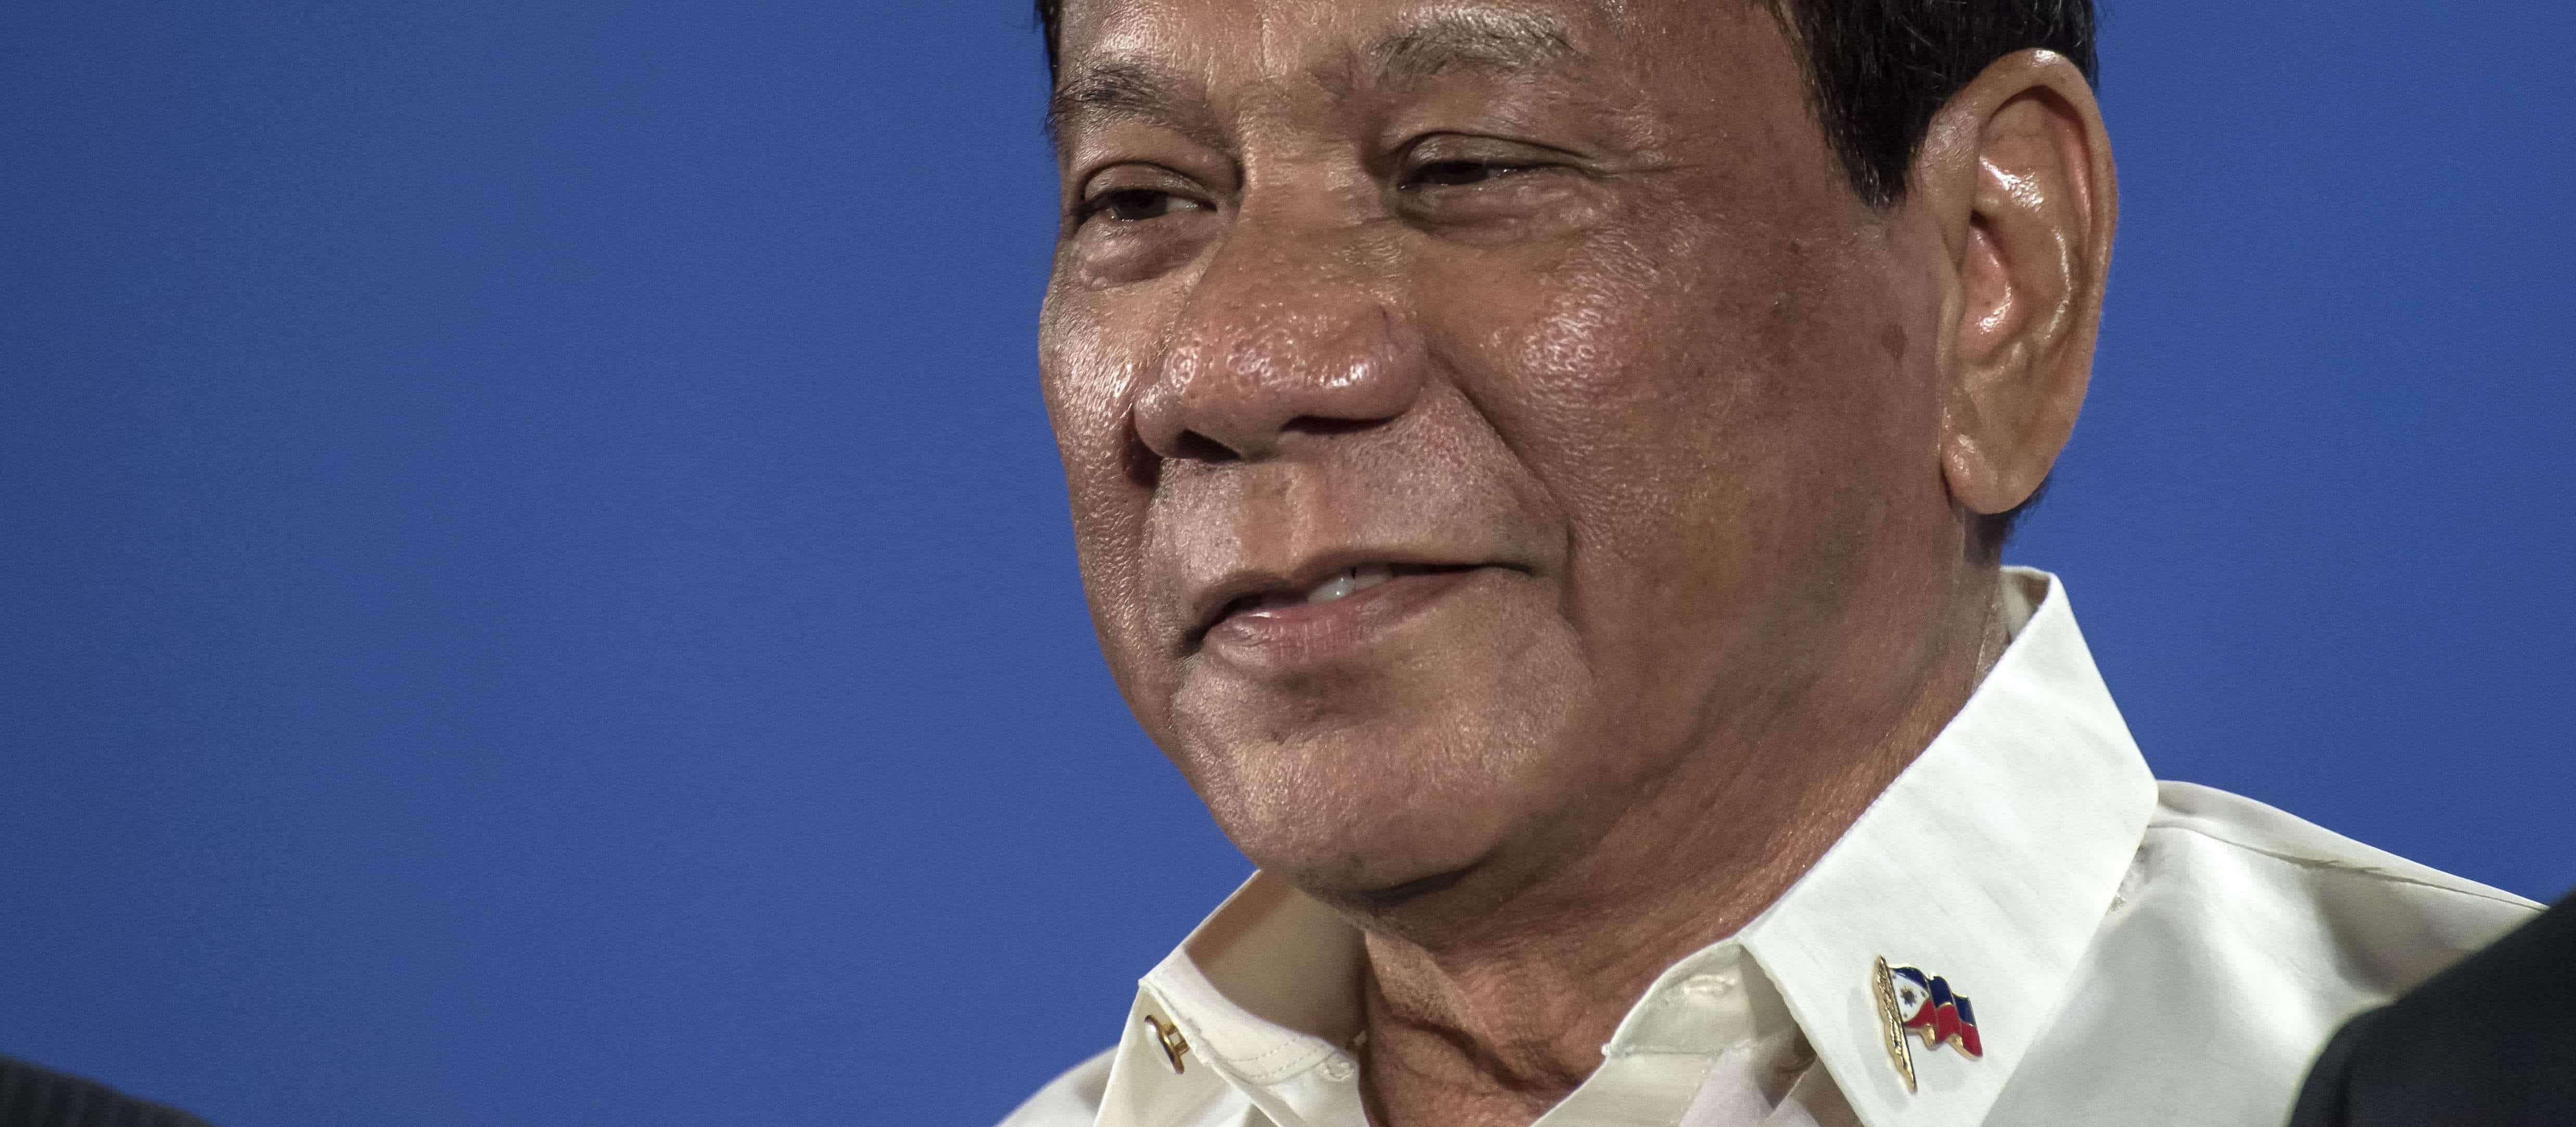 Rodrigo Duterte, president of the Philippines, in May. (Photo: Thierry Falise/Getty)